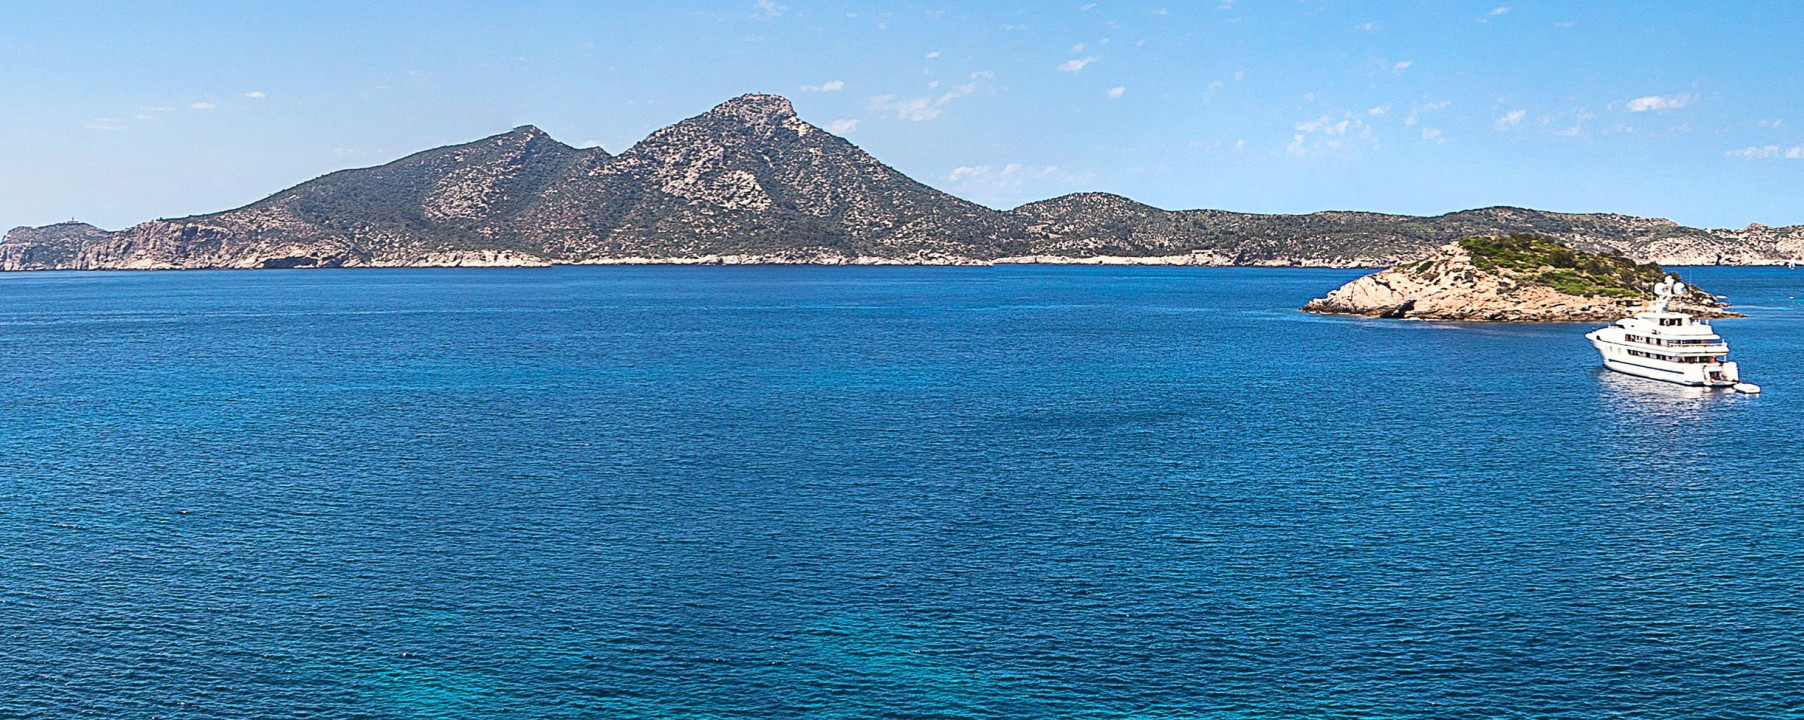 Dragonera view sant elm andratx mallorca real estate search Casafari